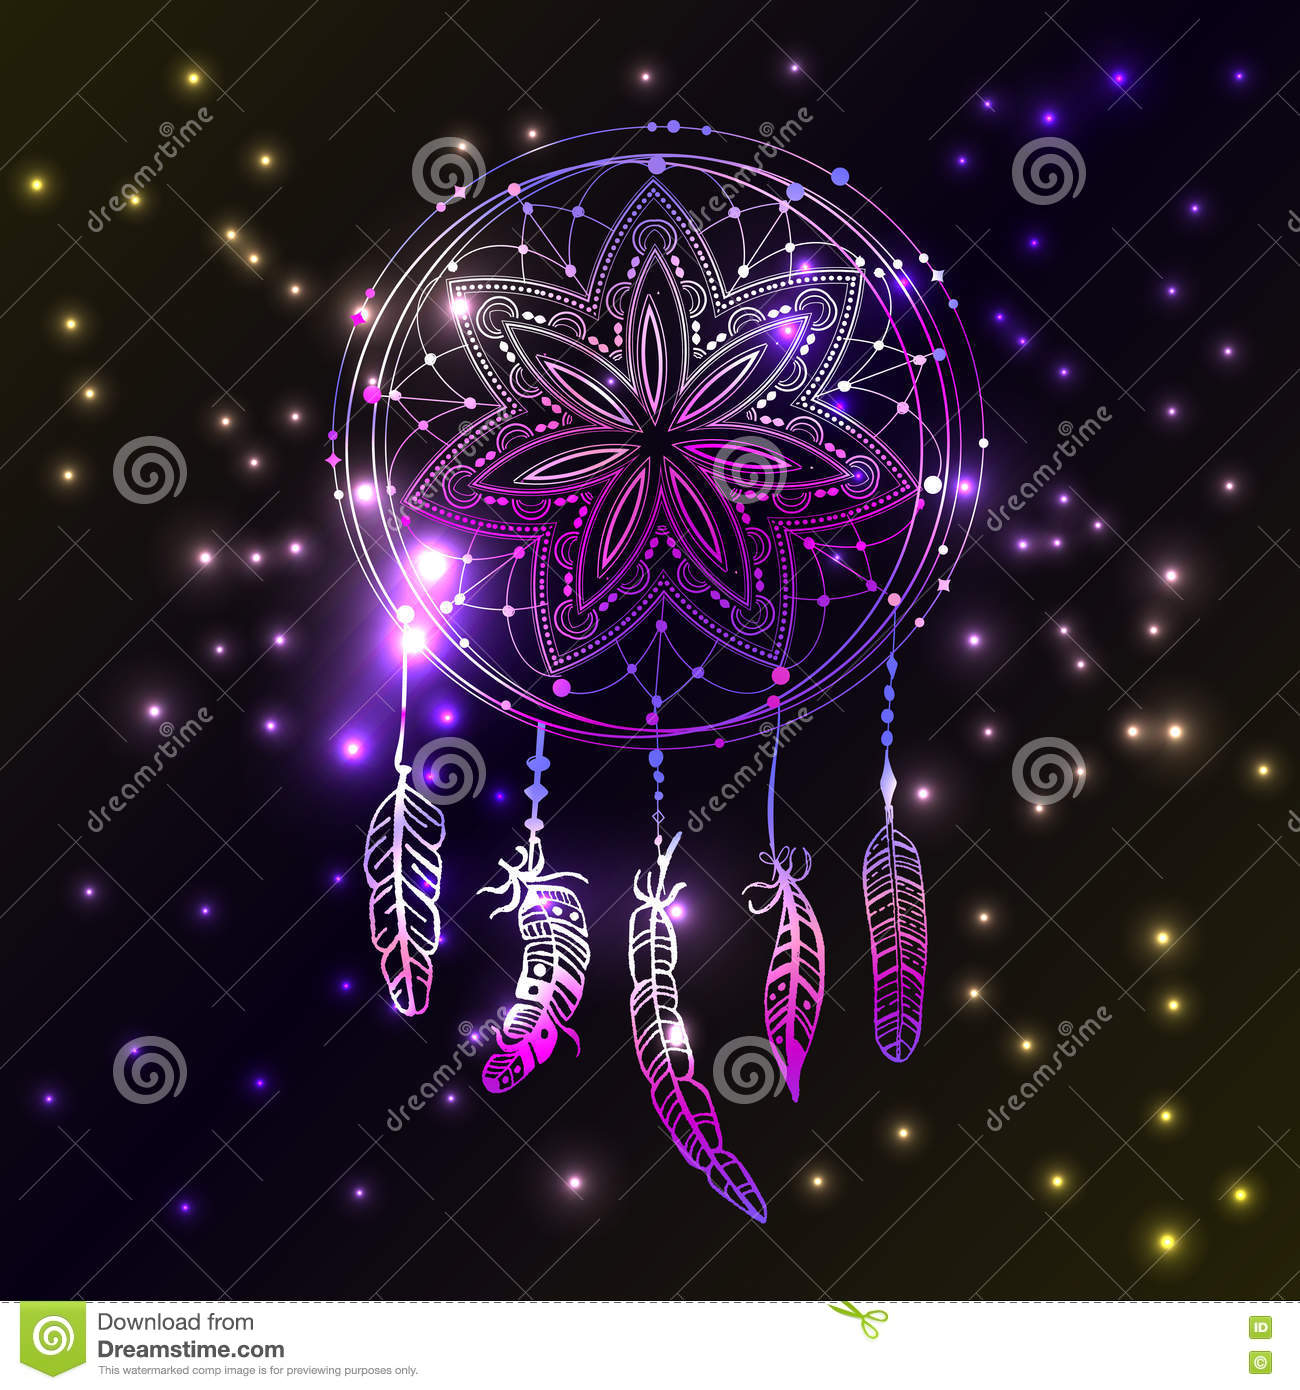 Abstract glowing dreamcatcher in blue and pink colors. Luminescence illustration. Boho style background, ethnic design elem